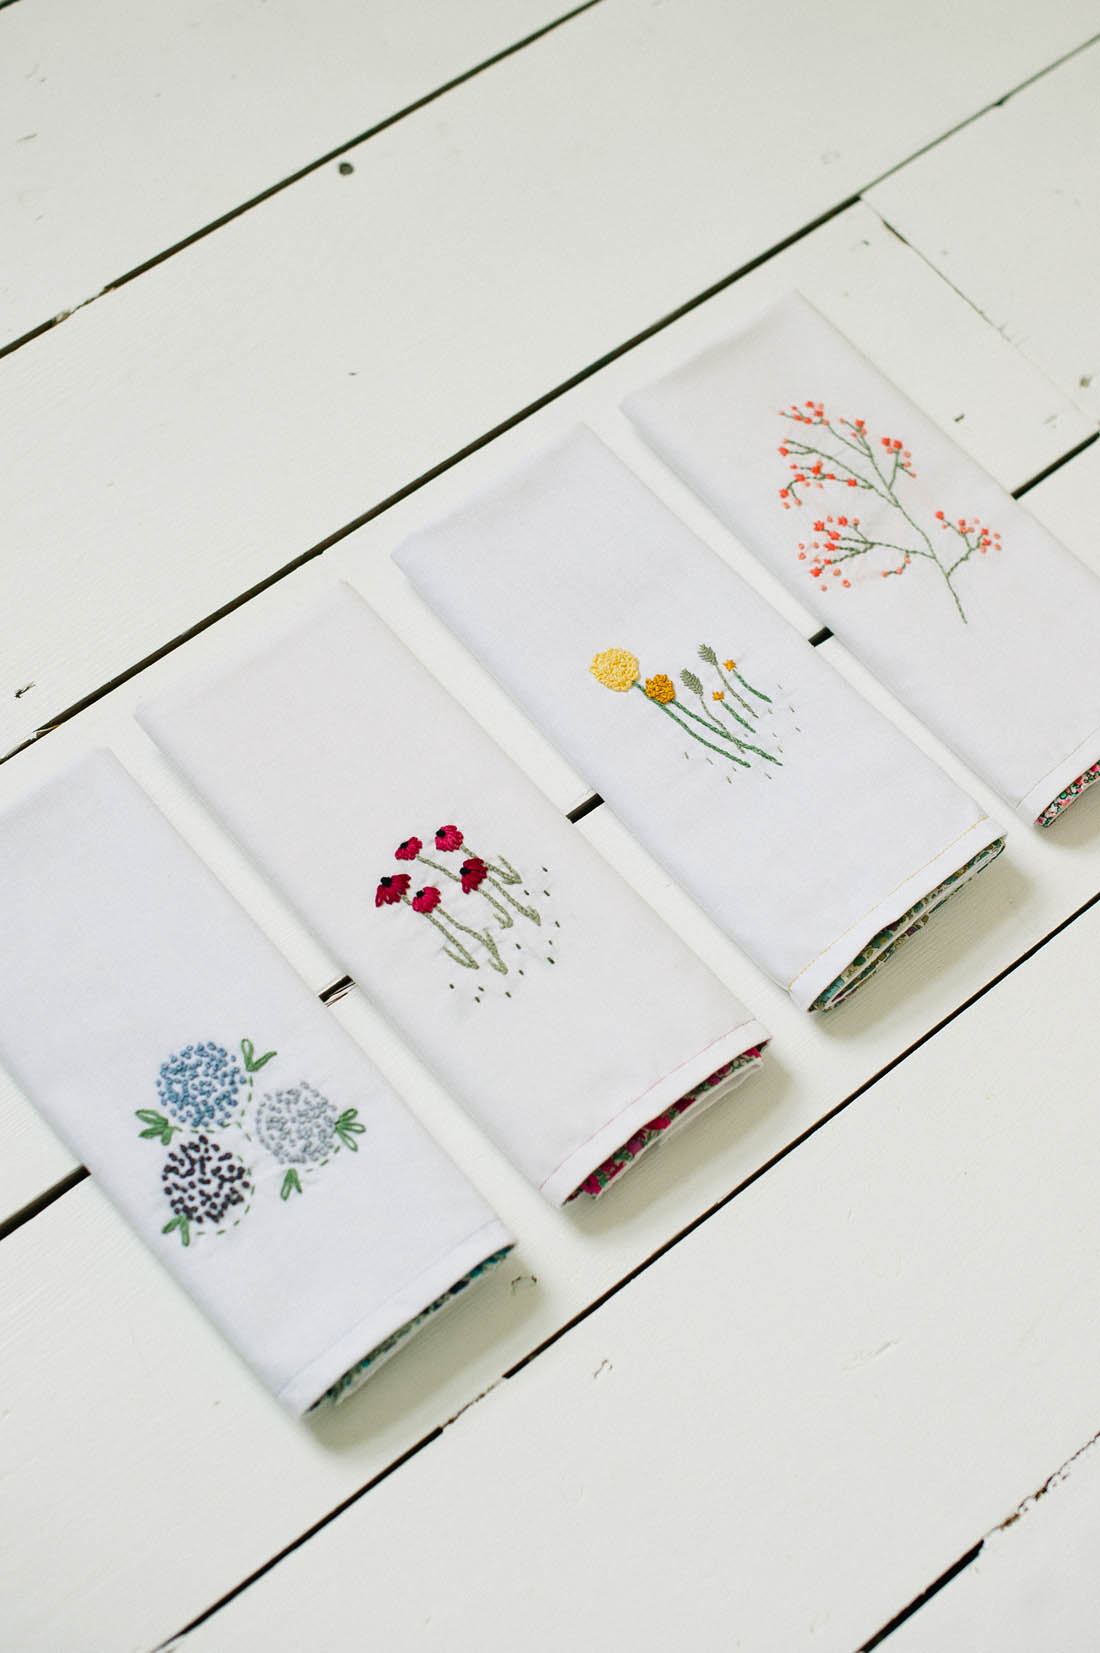 Embroidered napkin tutorial | Liberty print napkins | Sewing tutorial | Photos by KatharinePeachey.co.uk